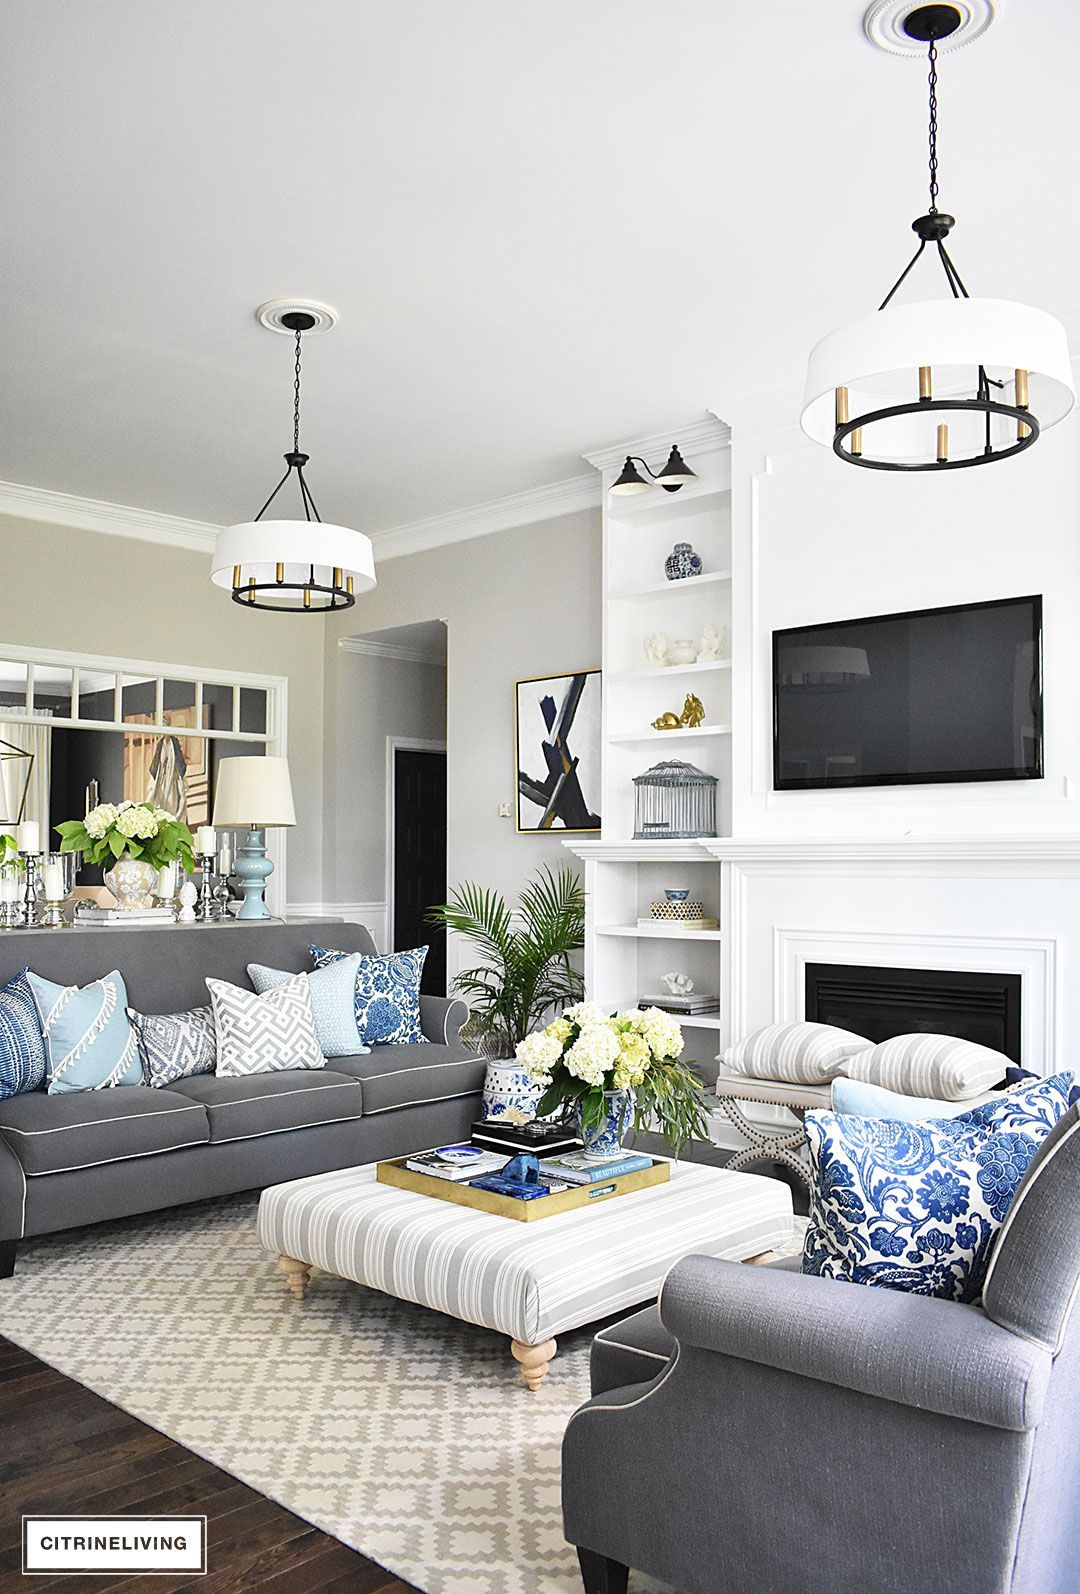 20+ Fresh Ideas for Decorating with Blue and White | Living room ...